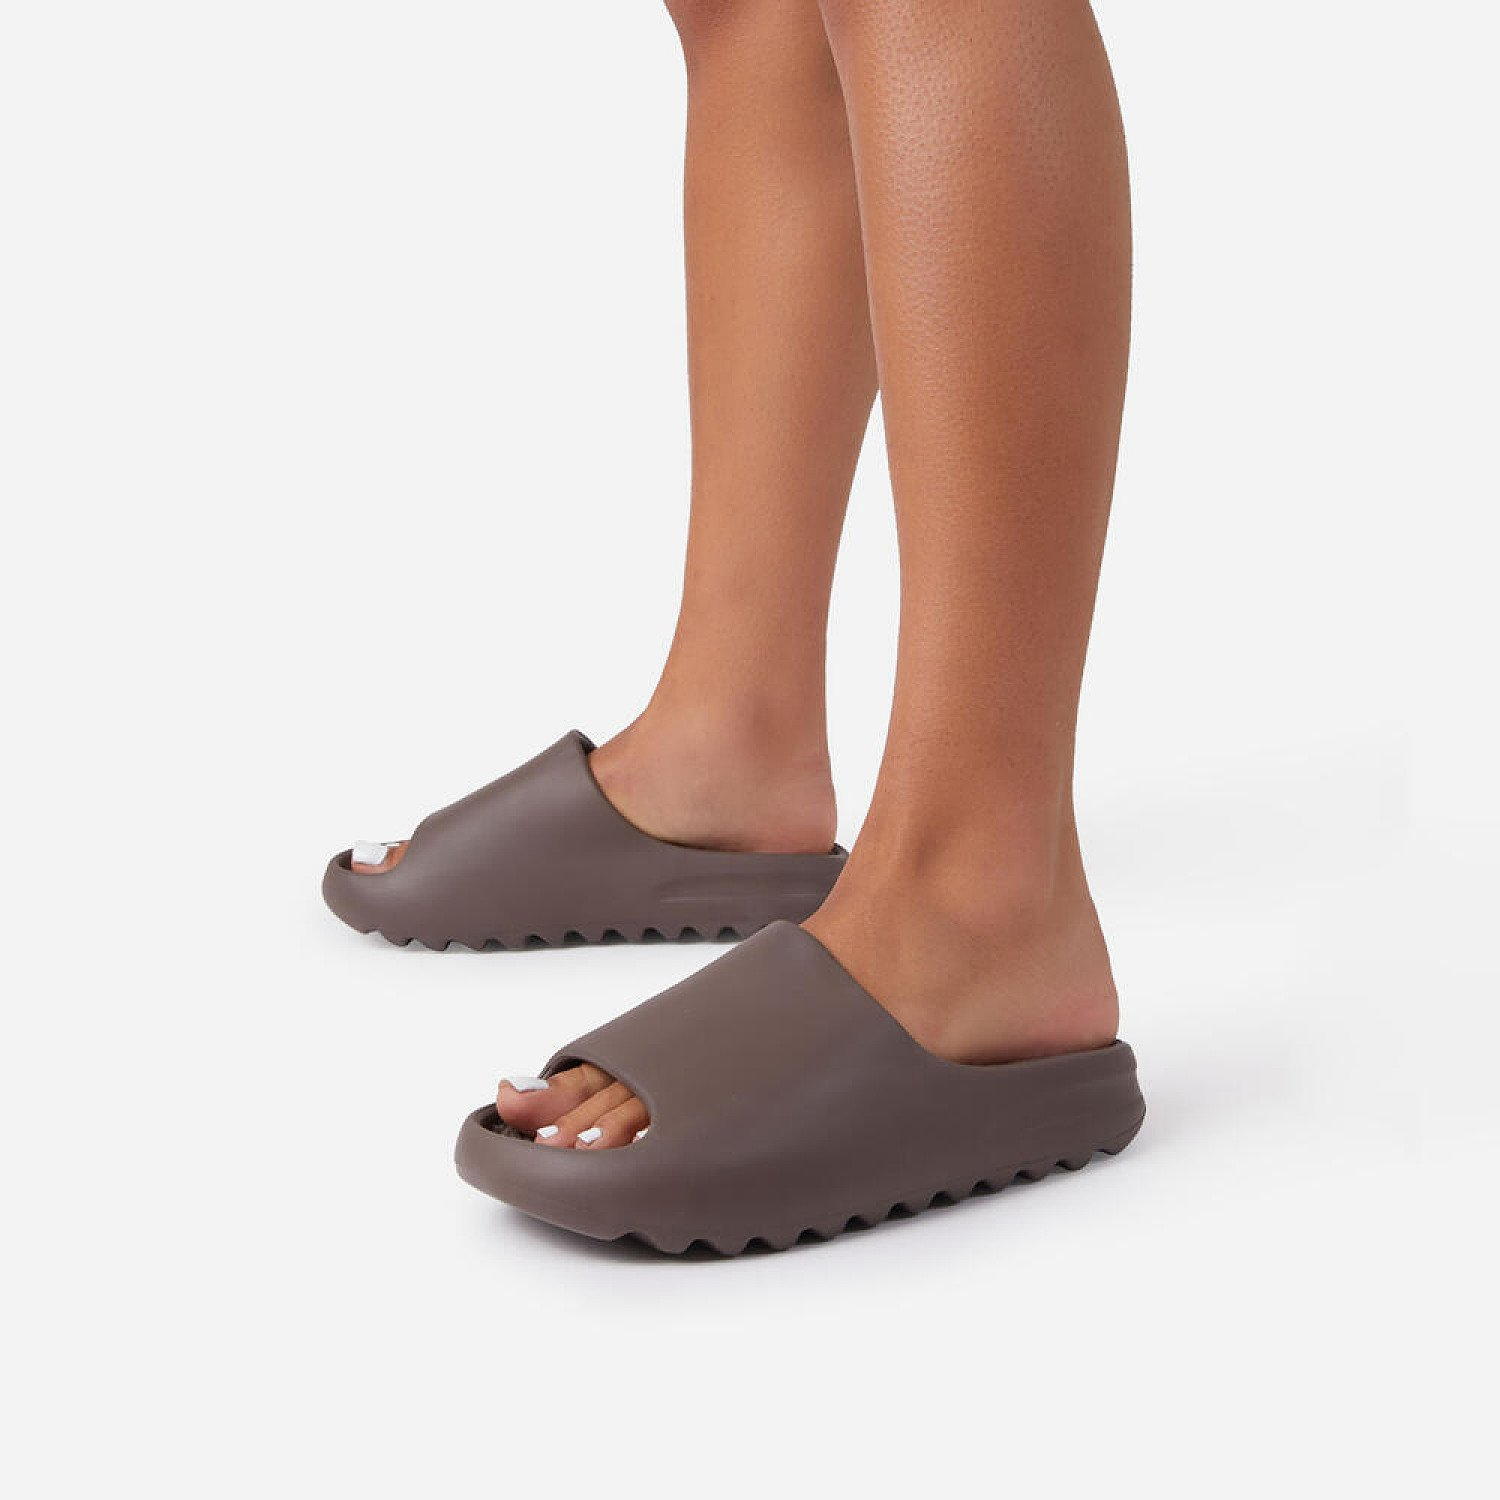 50% Off Kendall Faux Shearling Flat Slider Sandal In Chocolate Brown Rubber